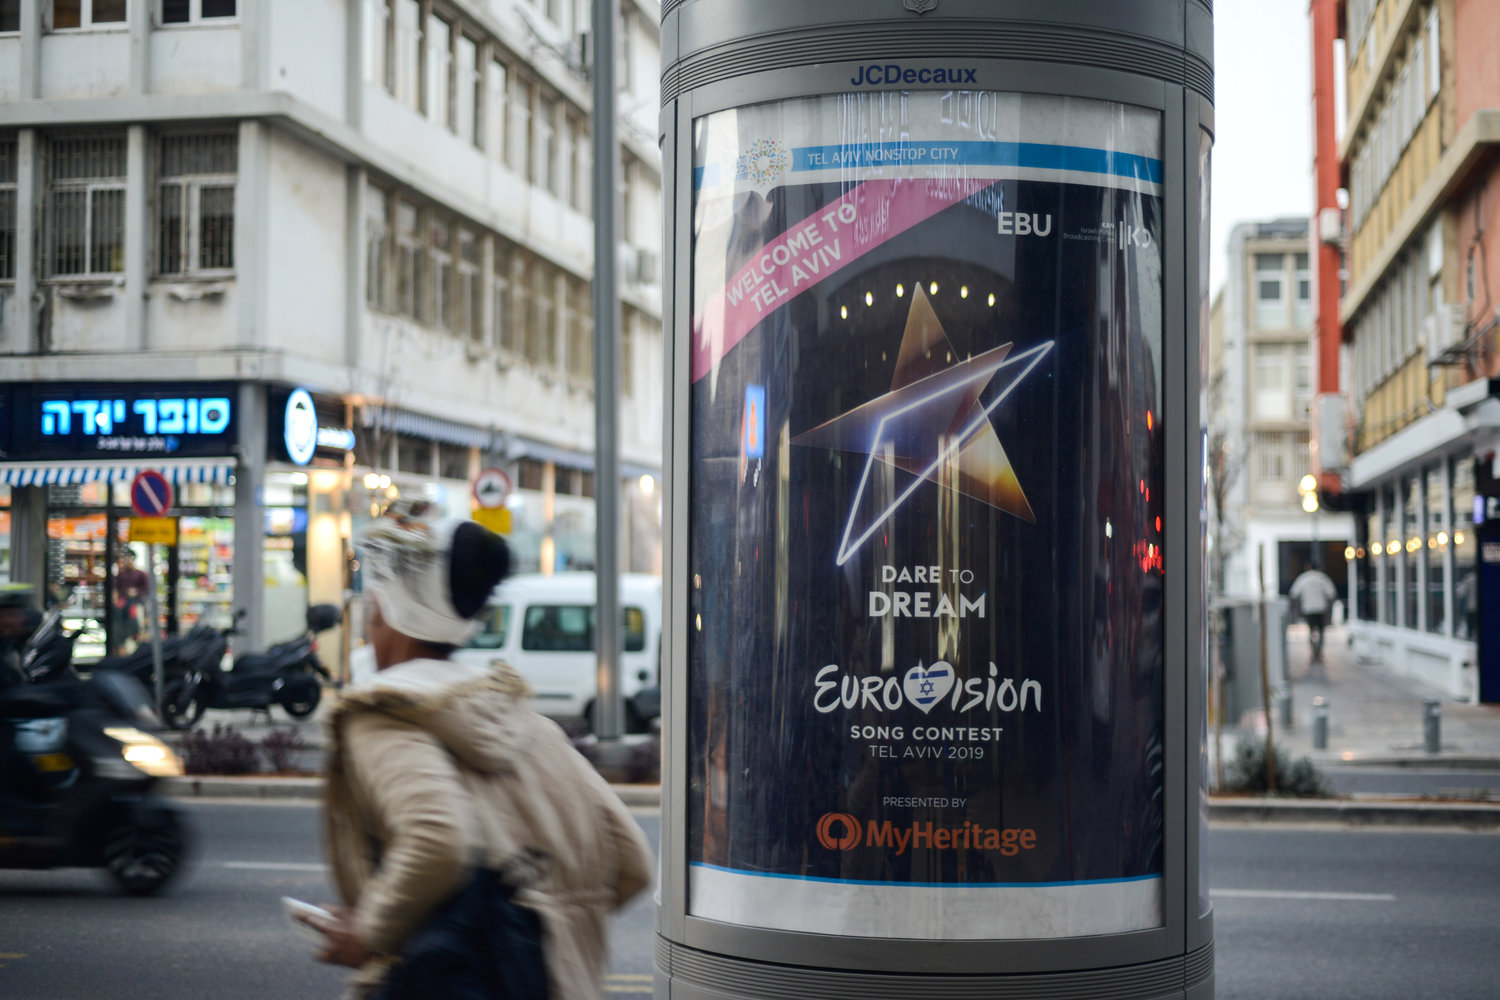 A street advertisement for the Eurovision Song Contest in Tel Aviv.